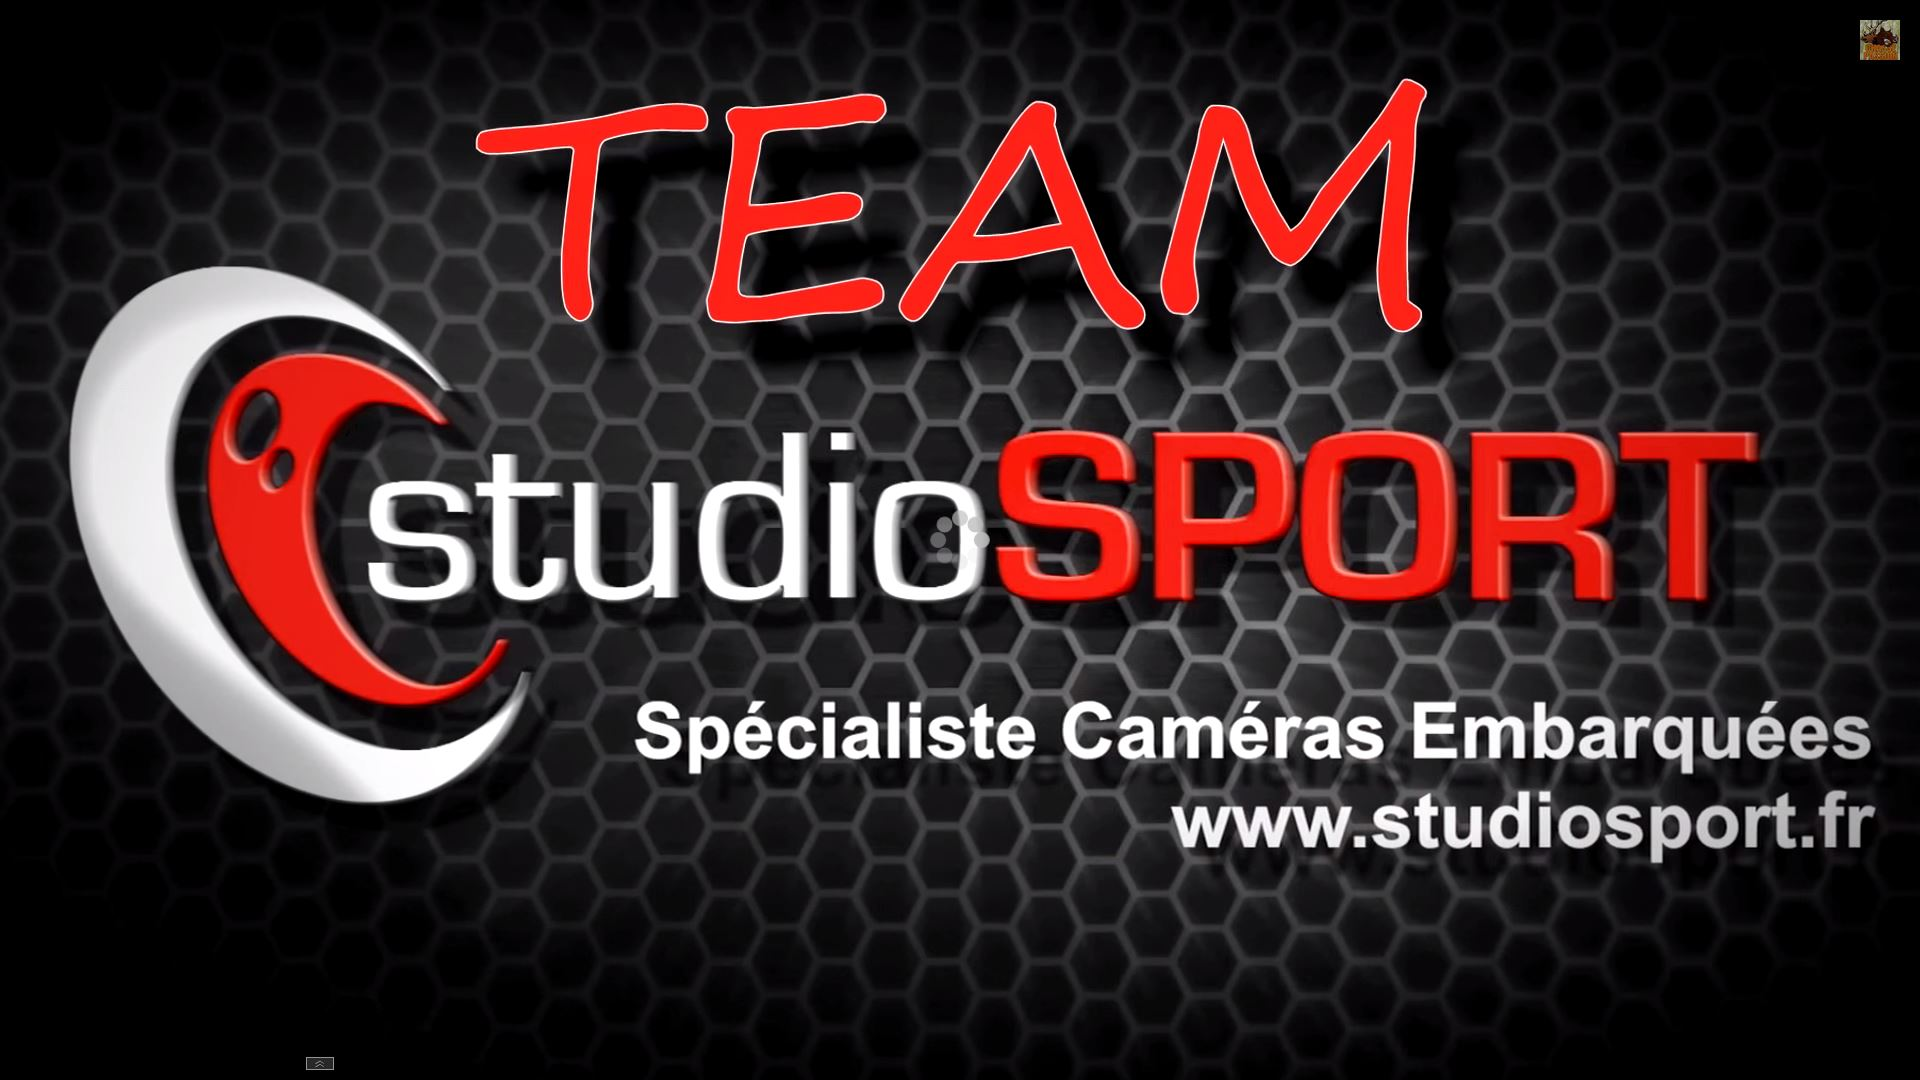 2015-02-11 10_25_01-Team Chasse Studiosport _ Chasse & Cameras embarquees - YouTube